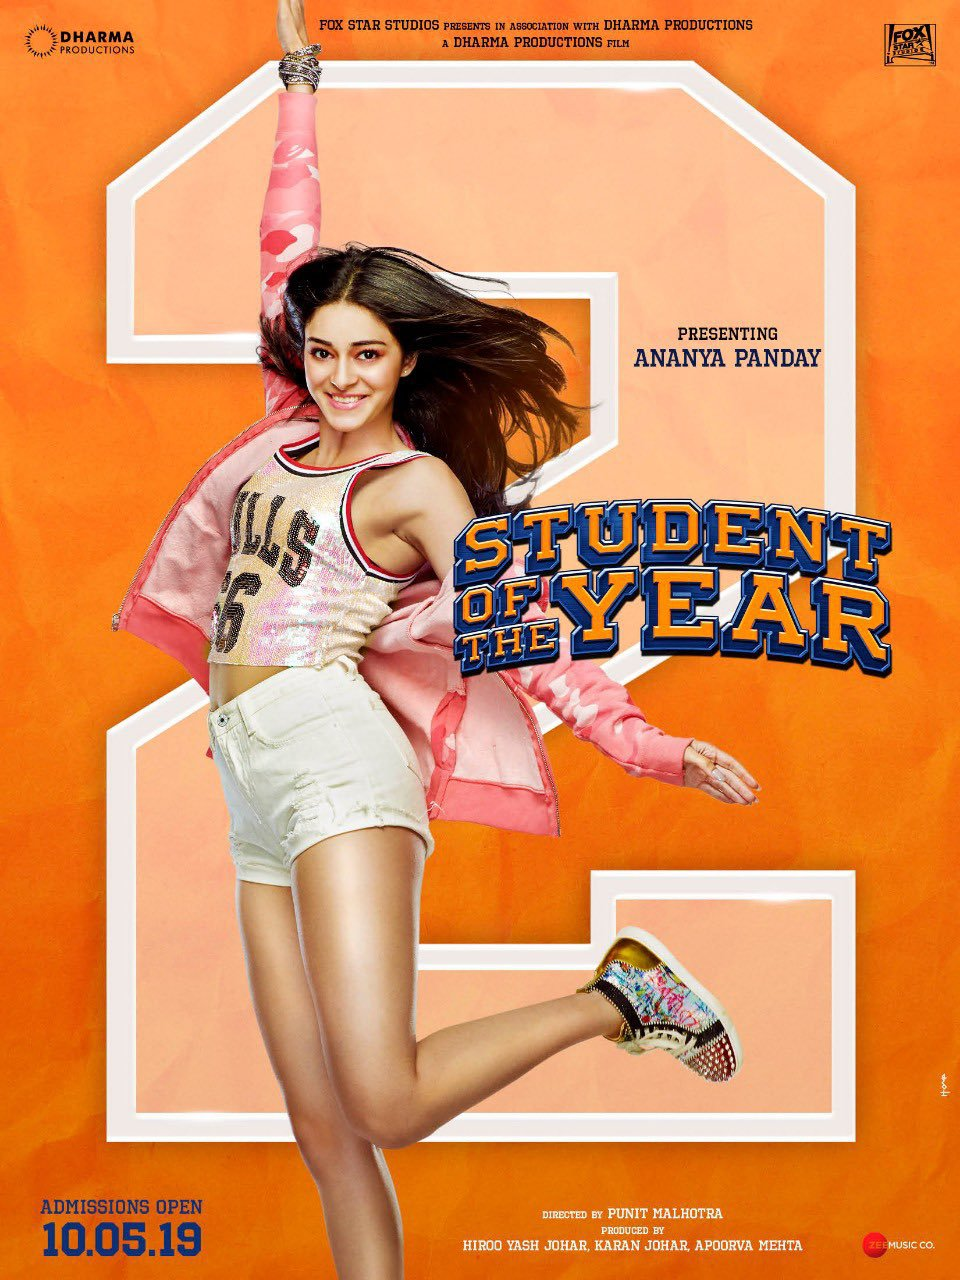 Student Of The Year 2 Ananya Panday